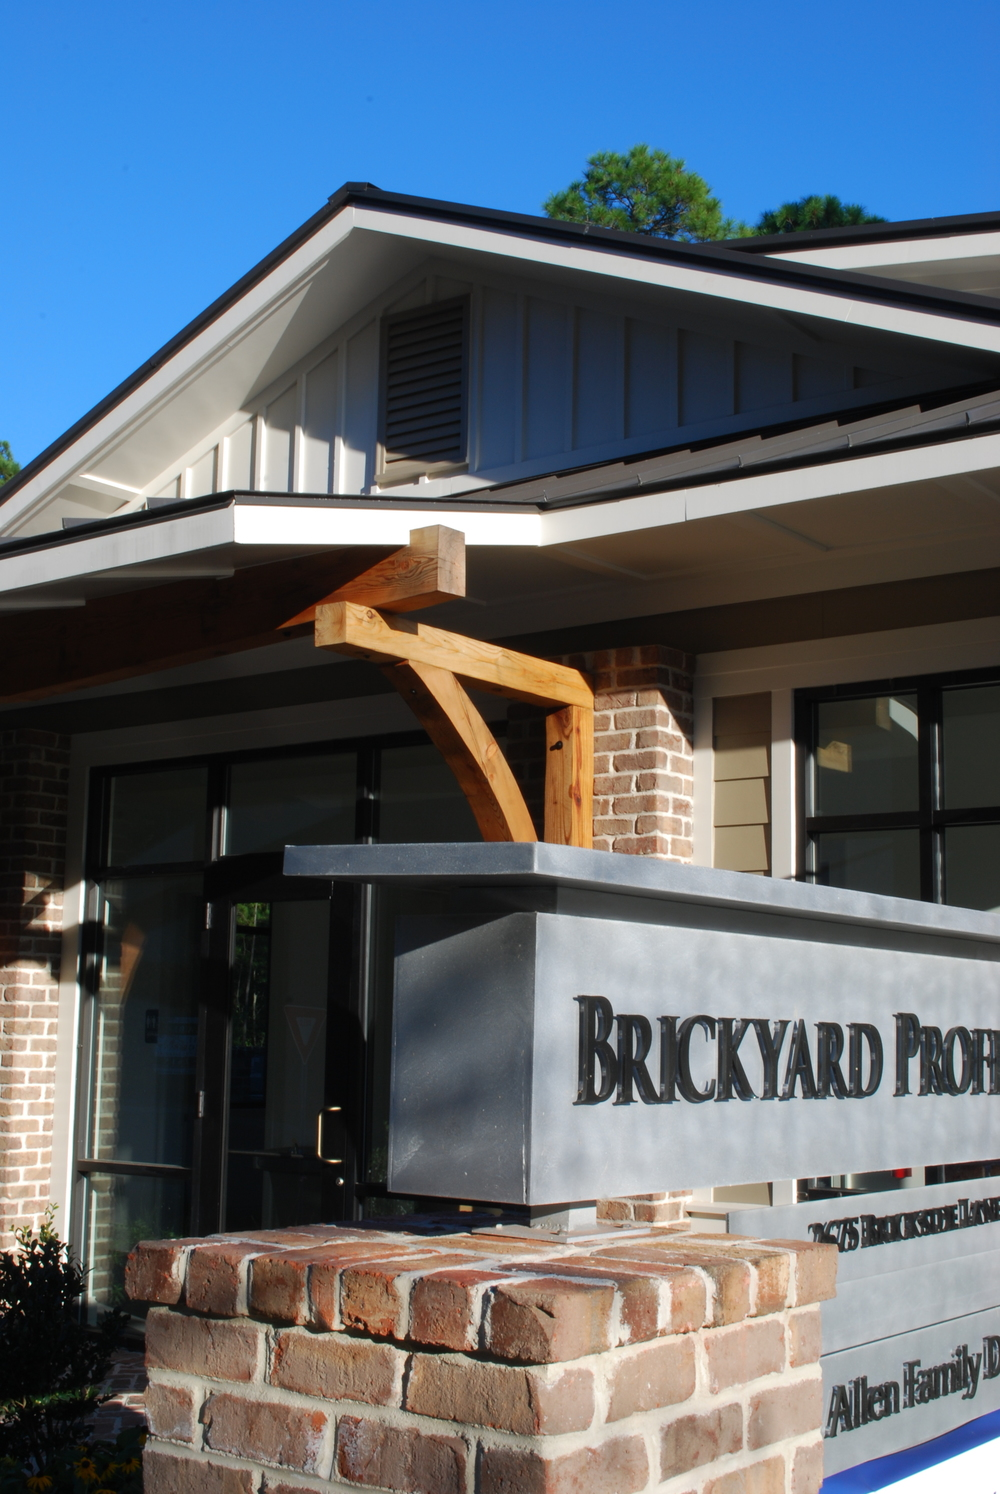 2007-8 | Brickyard Professional Park design for Allen Family Dentistry in Mount Pleasant integrates brick, wood and steel.